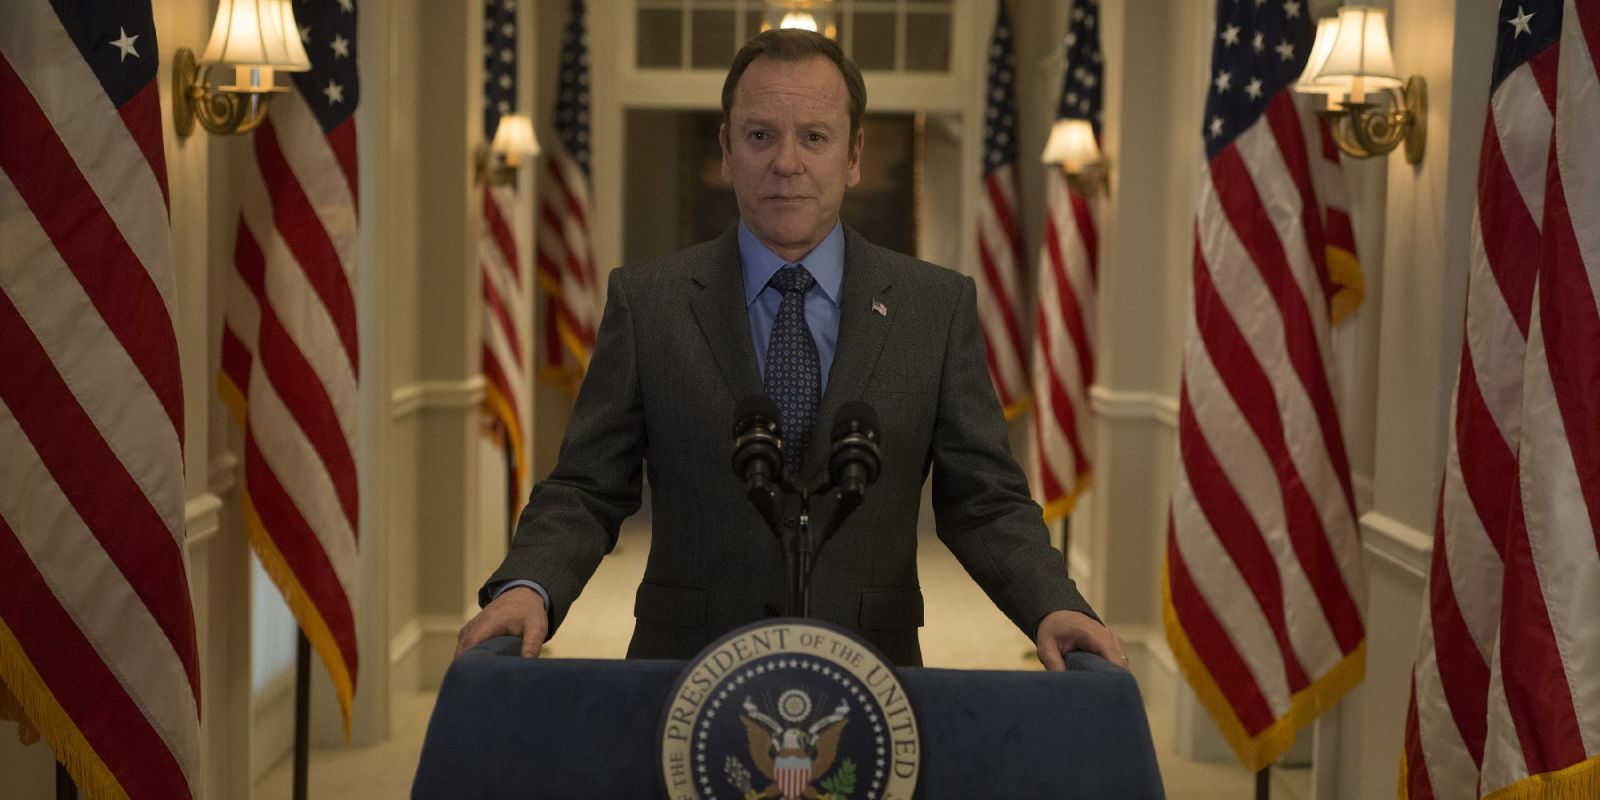 Kiefer Sutherland's Designated Survivor is the latest show to be saved by Netflix